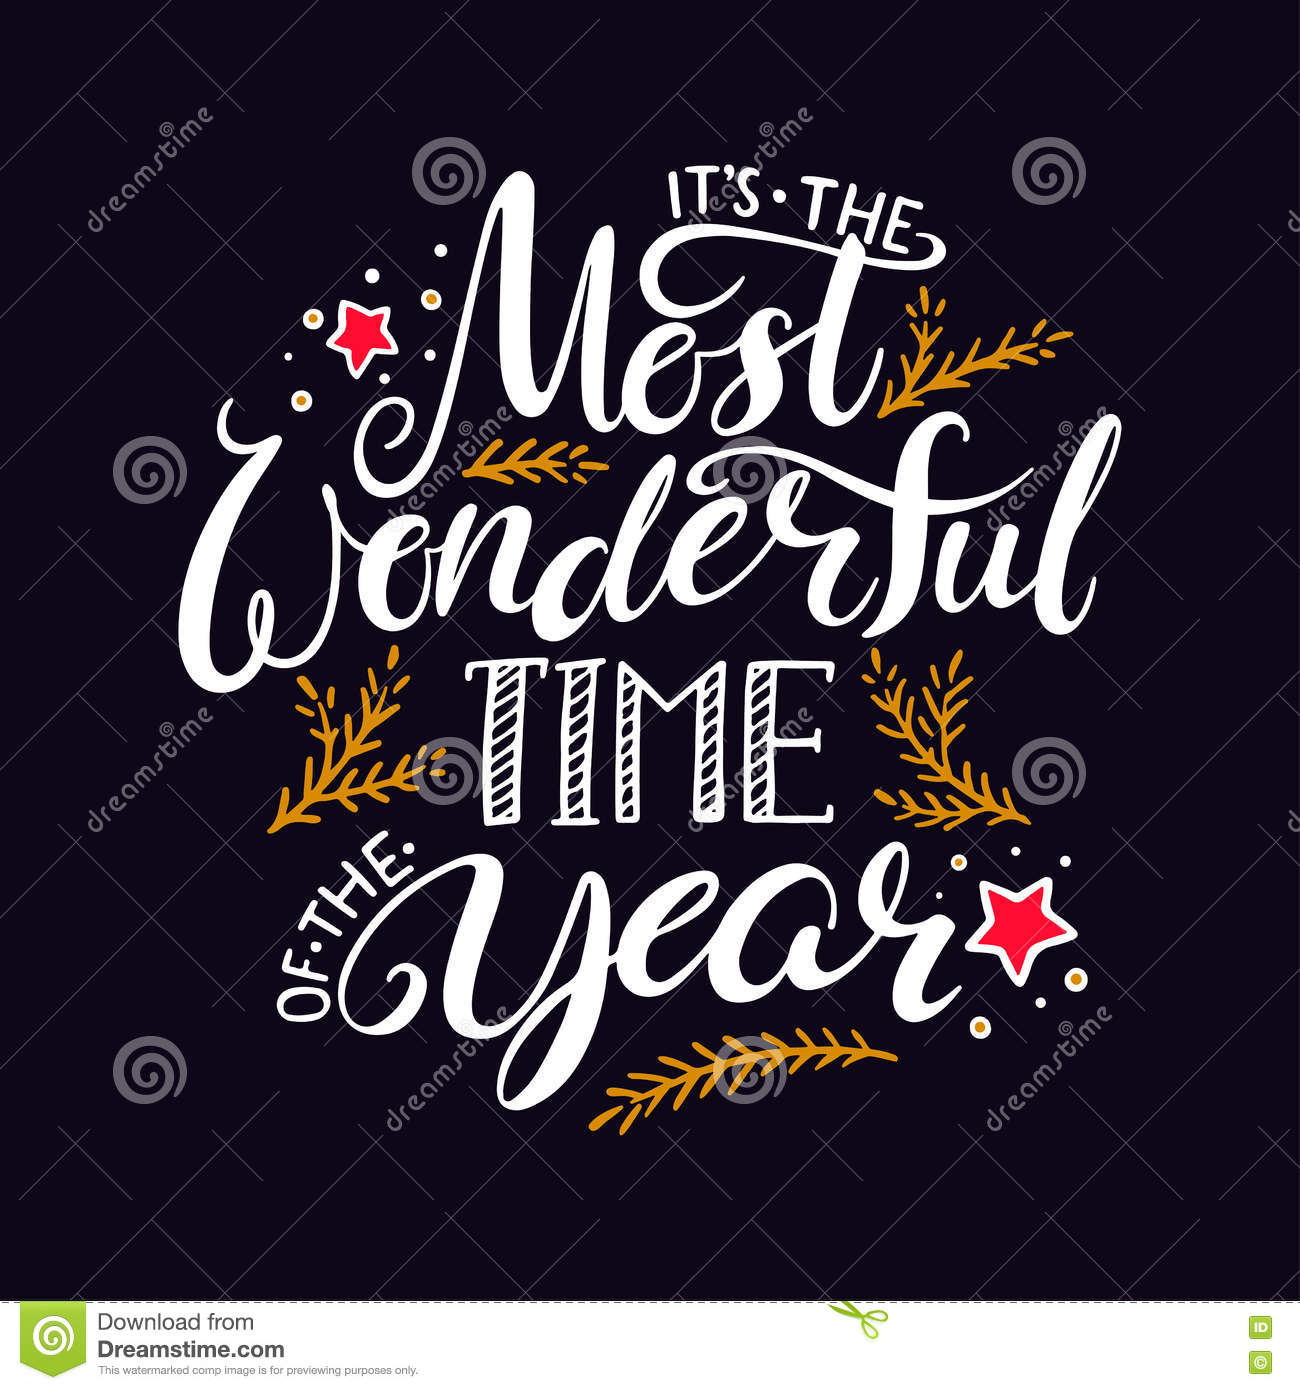 Wonderful Time Year Stock Illustrations 517 Wonderful Time Year Stock Illustrations Vectors Clipart Dreamstime